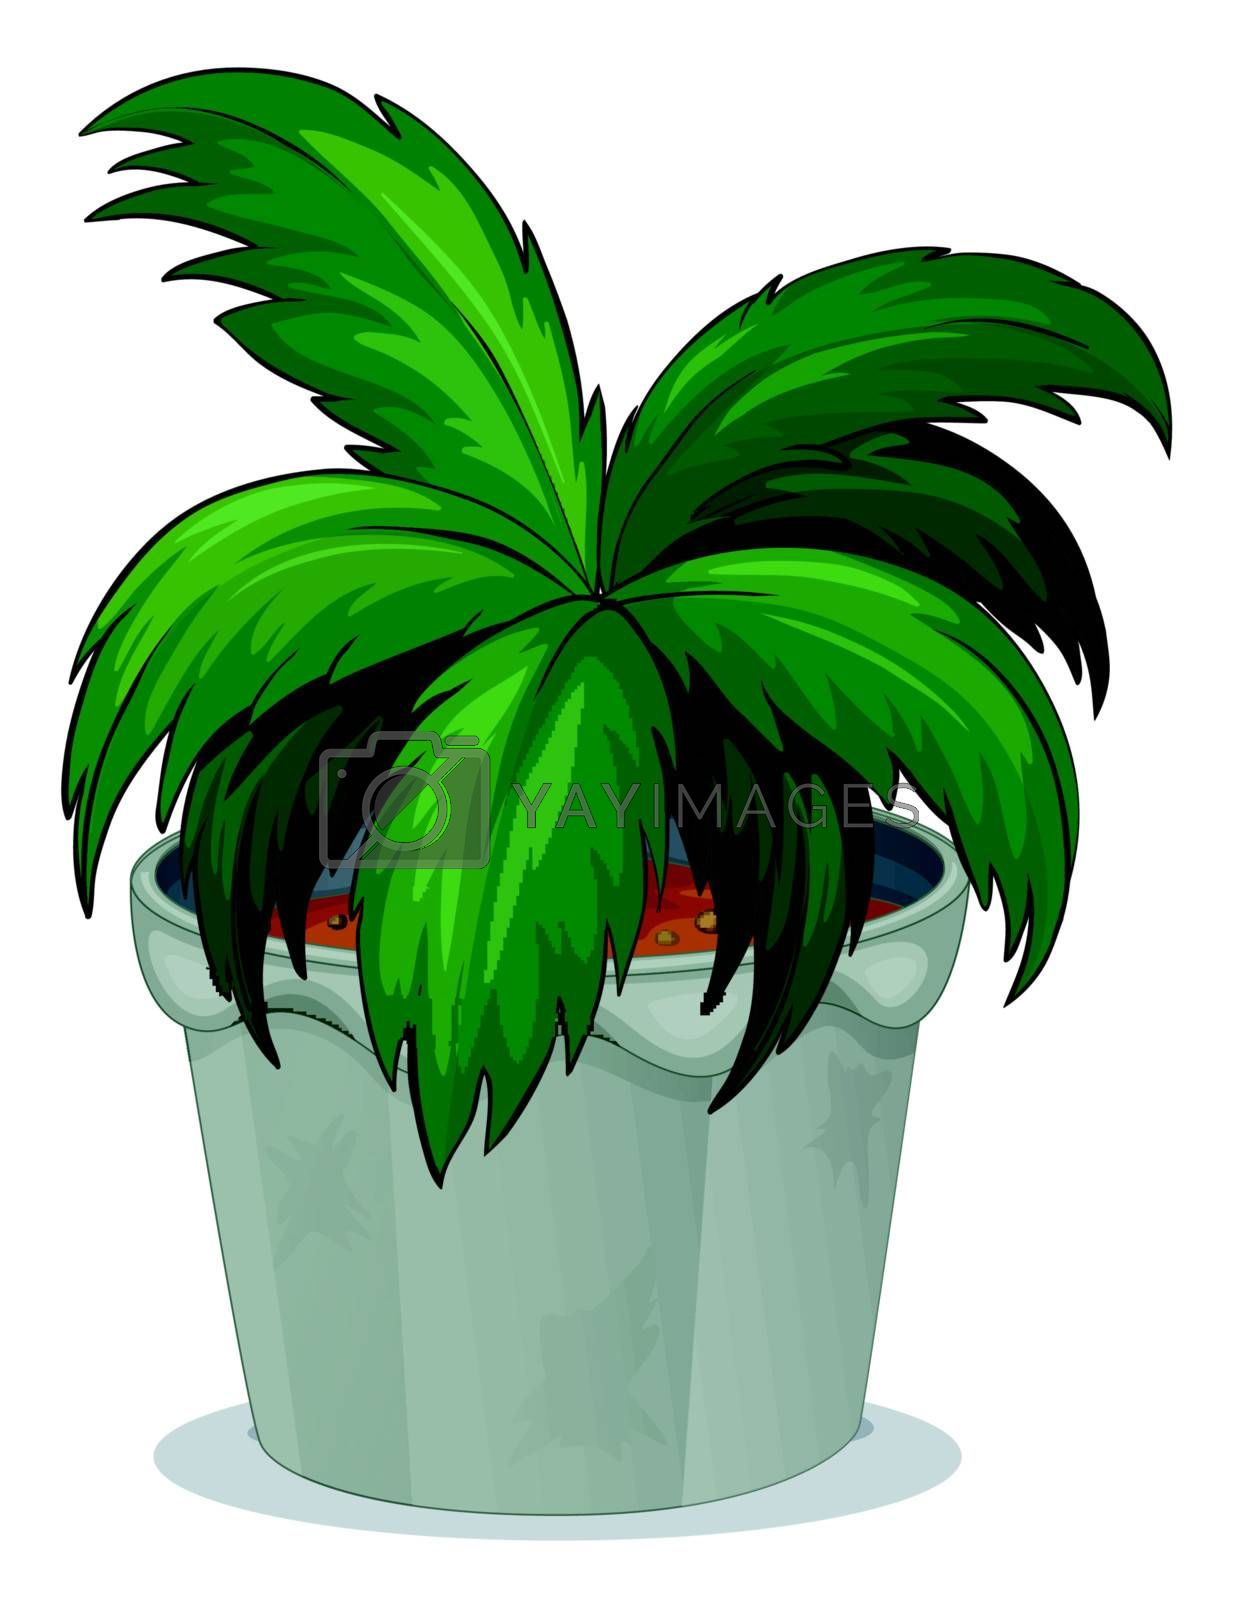 Illustration of a pot with a green leafy plant on a white background